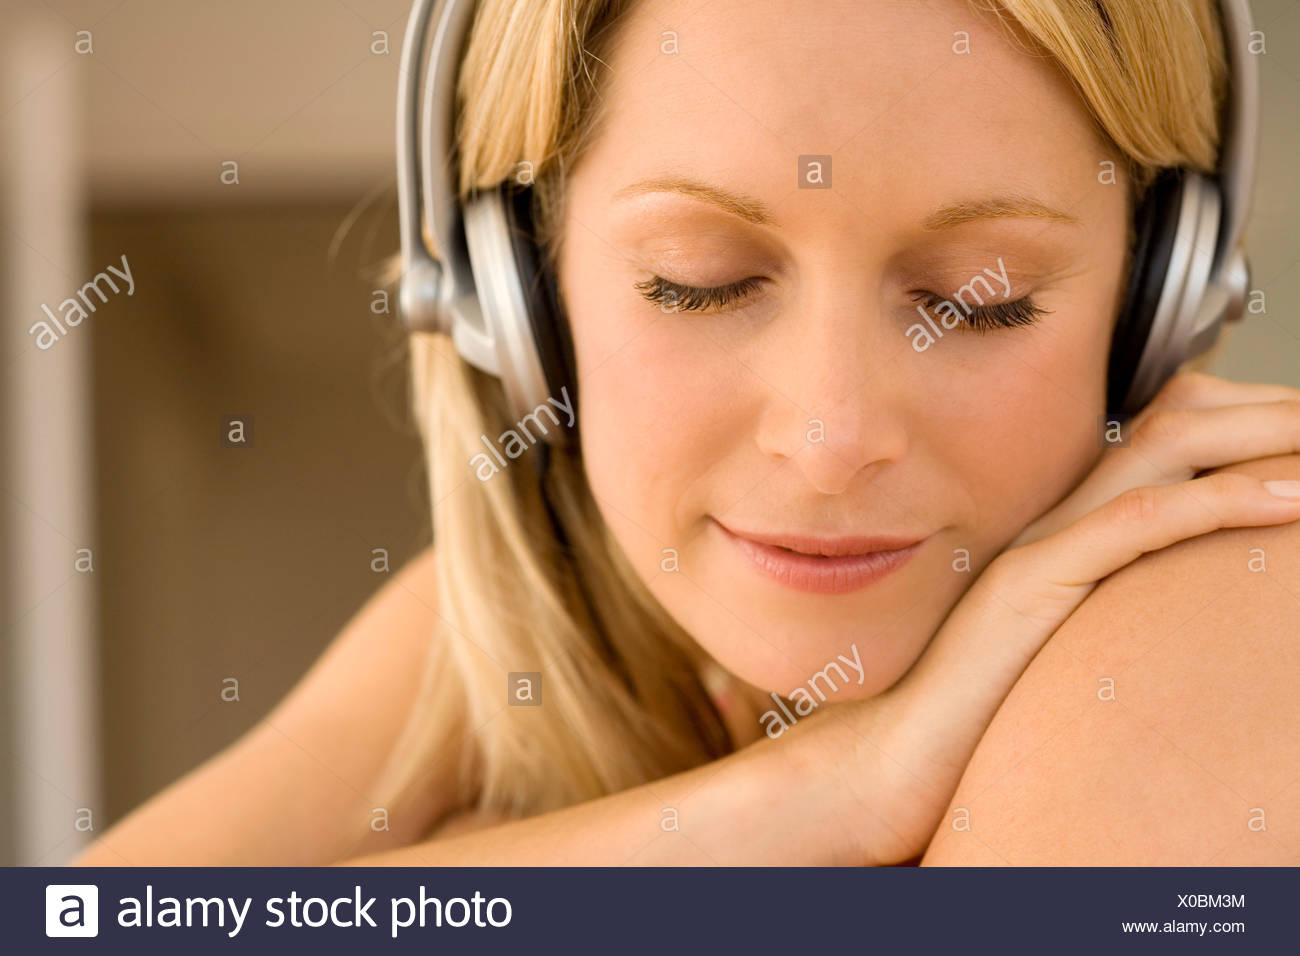 Young woman listening to music with headphones - Stock Image